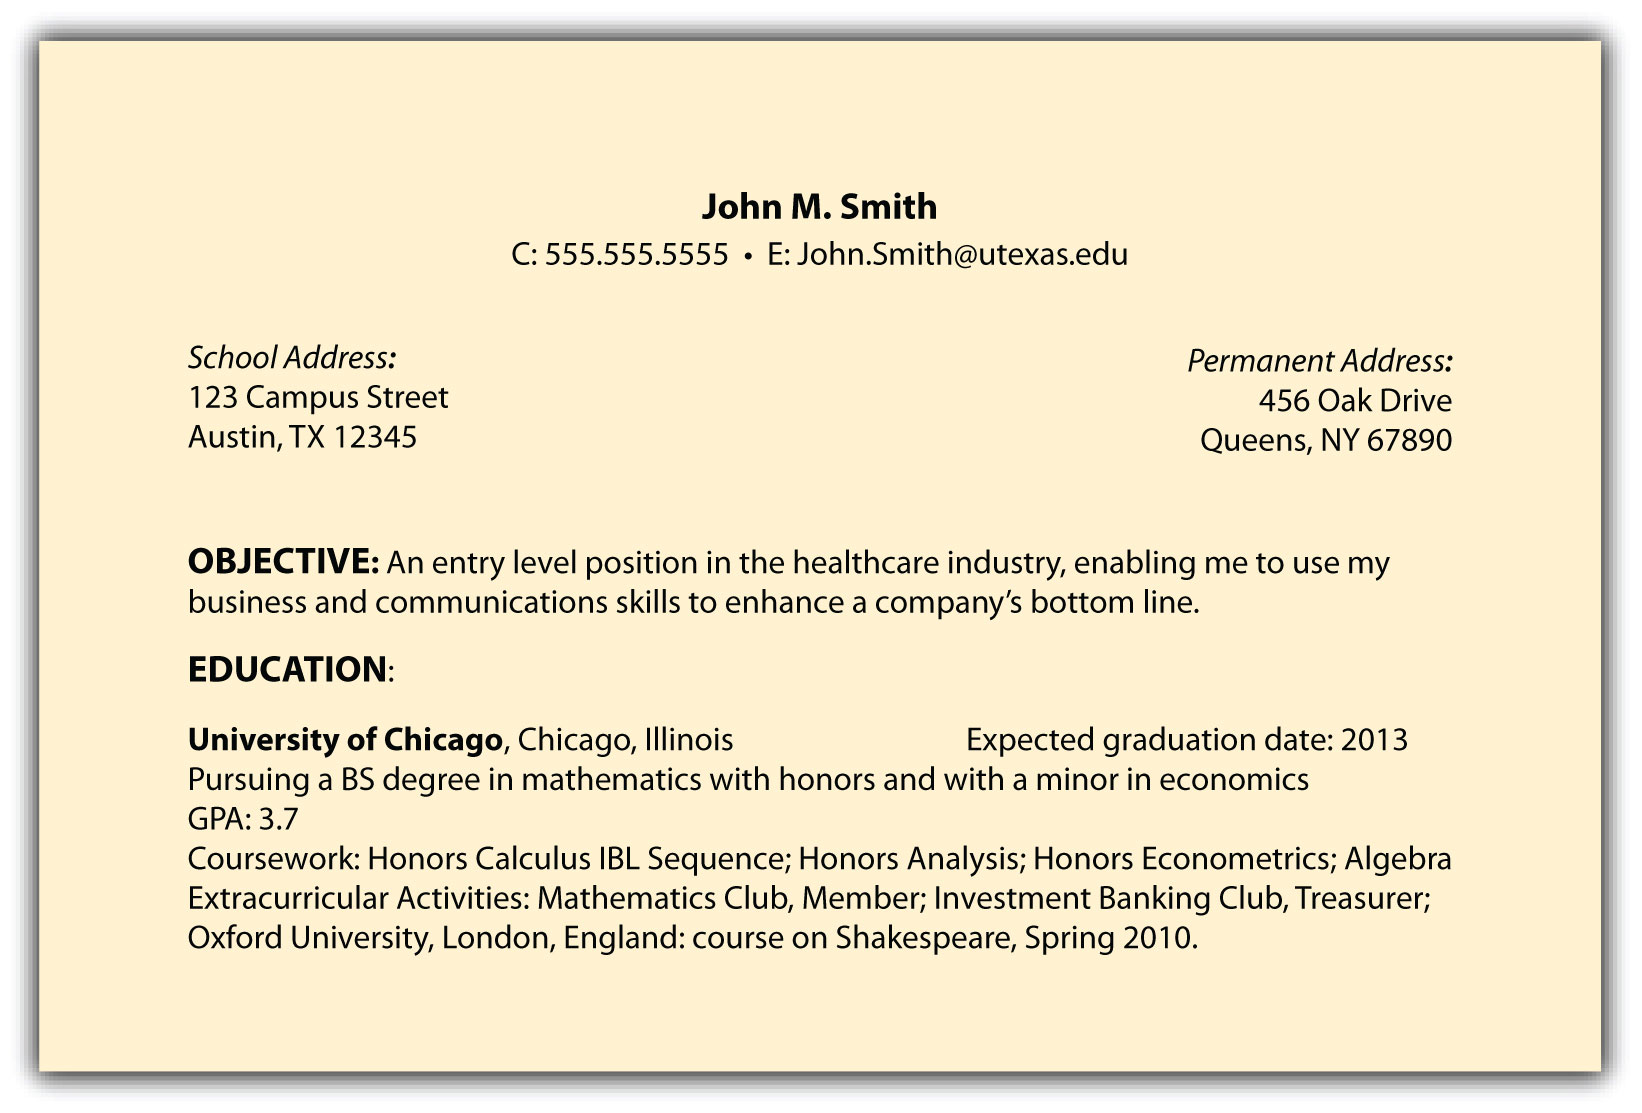 pretty resume objectives sample images gallery eye grabbing